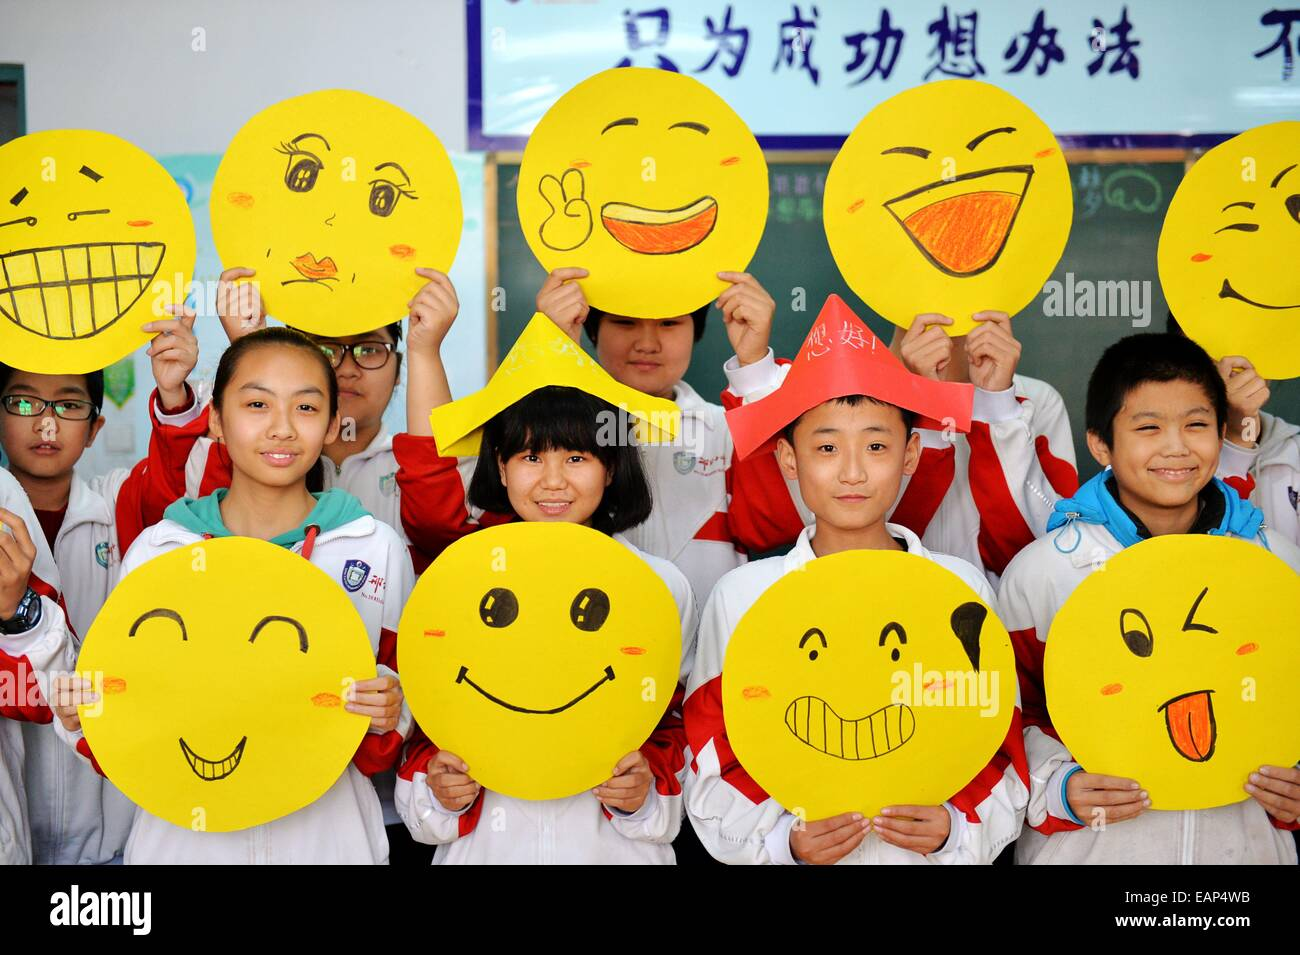 Xingtai 19th Nov 2014 Students Demonstrate Greeting Cards With